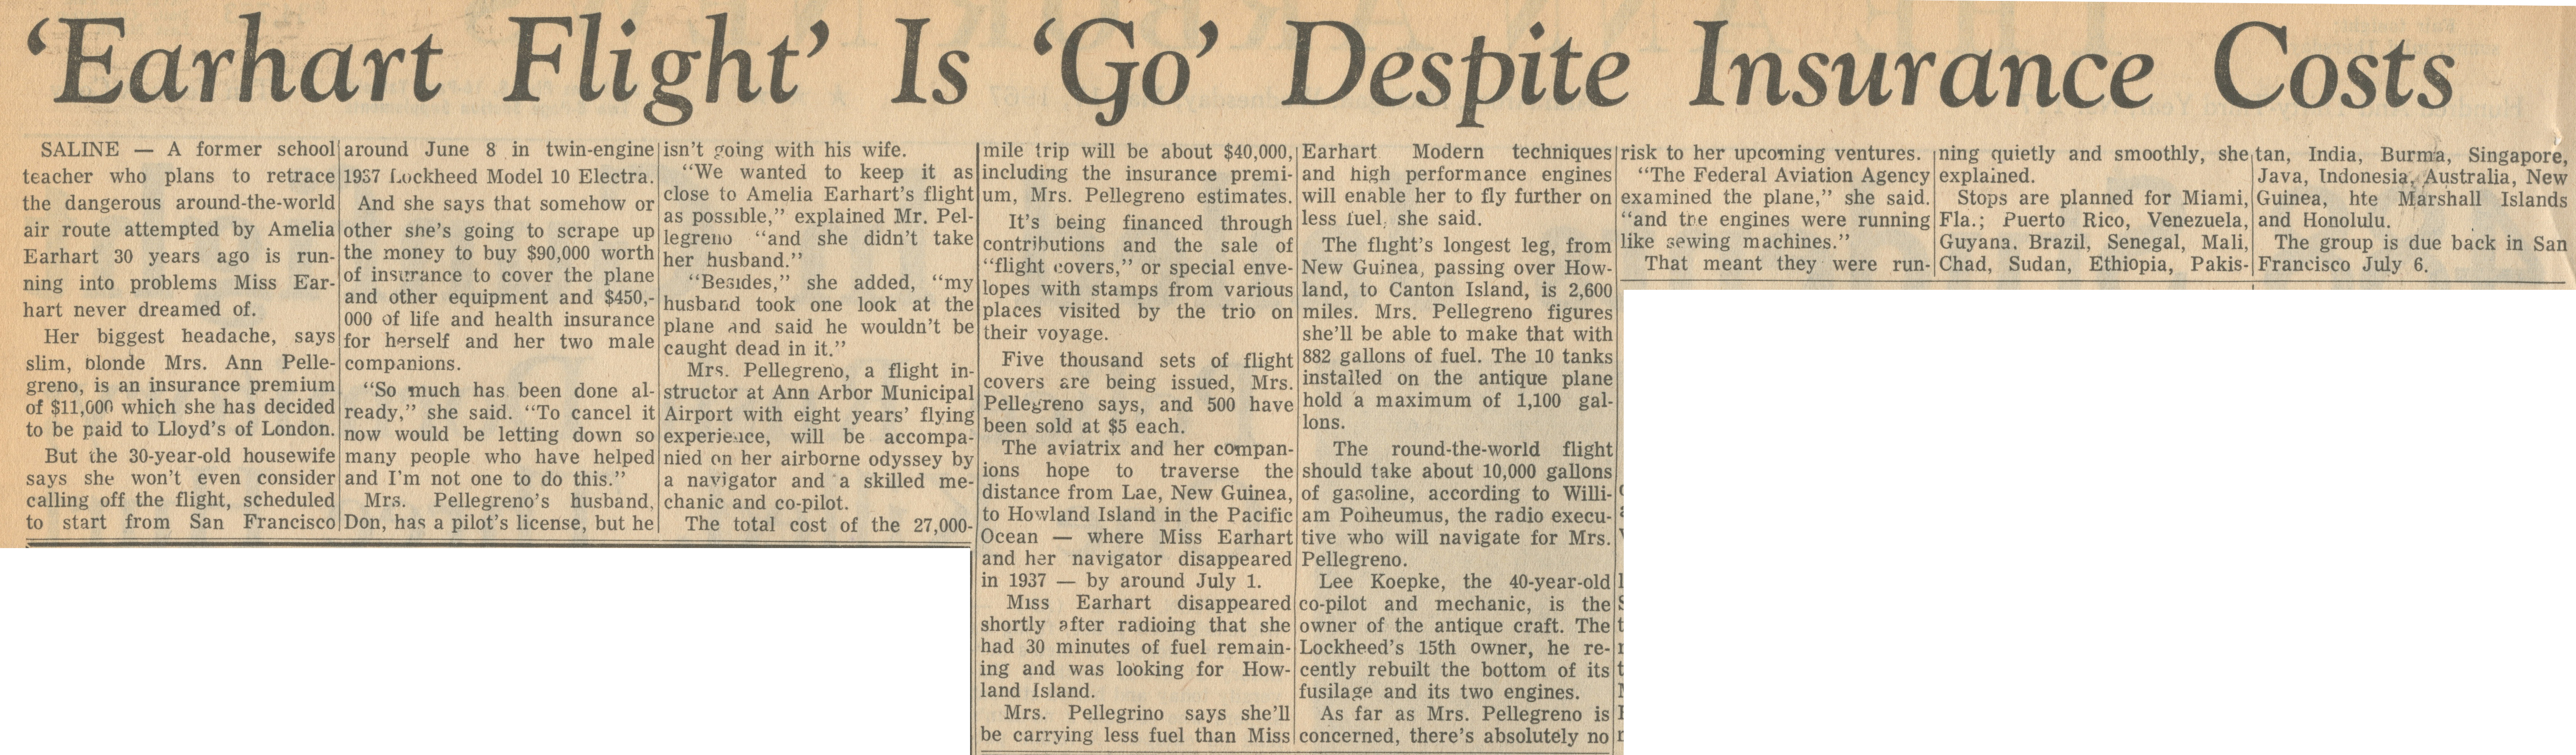 'Earhart Flight' Is 'Go' Despite Insurance Costs image